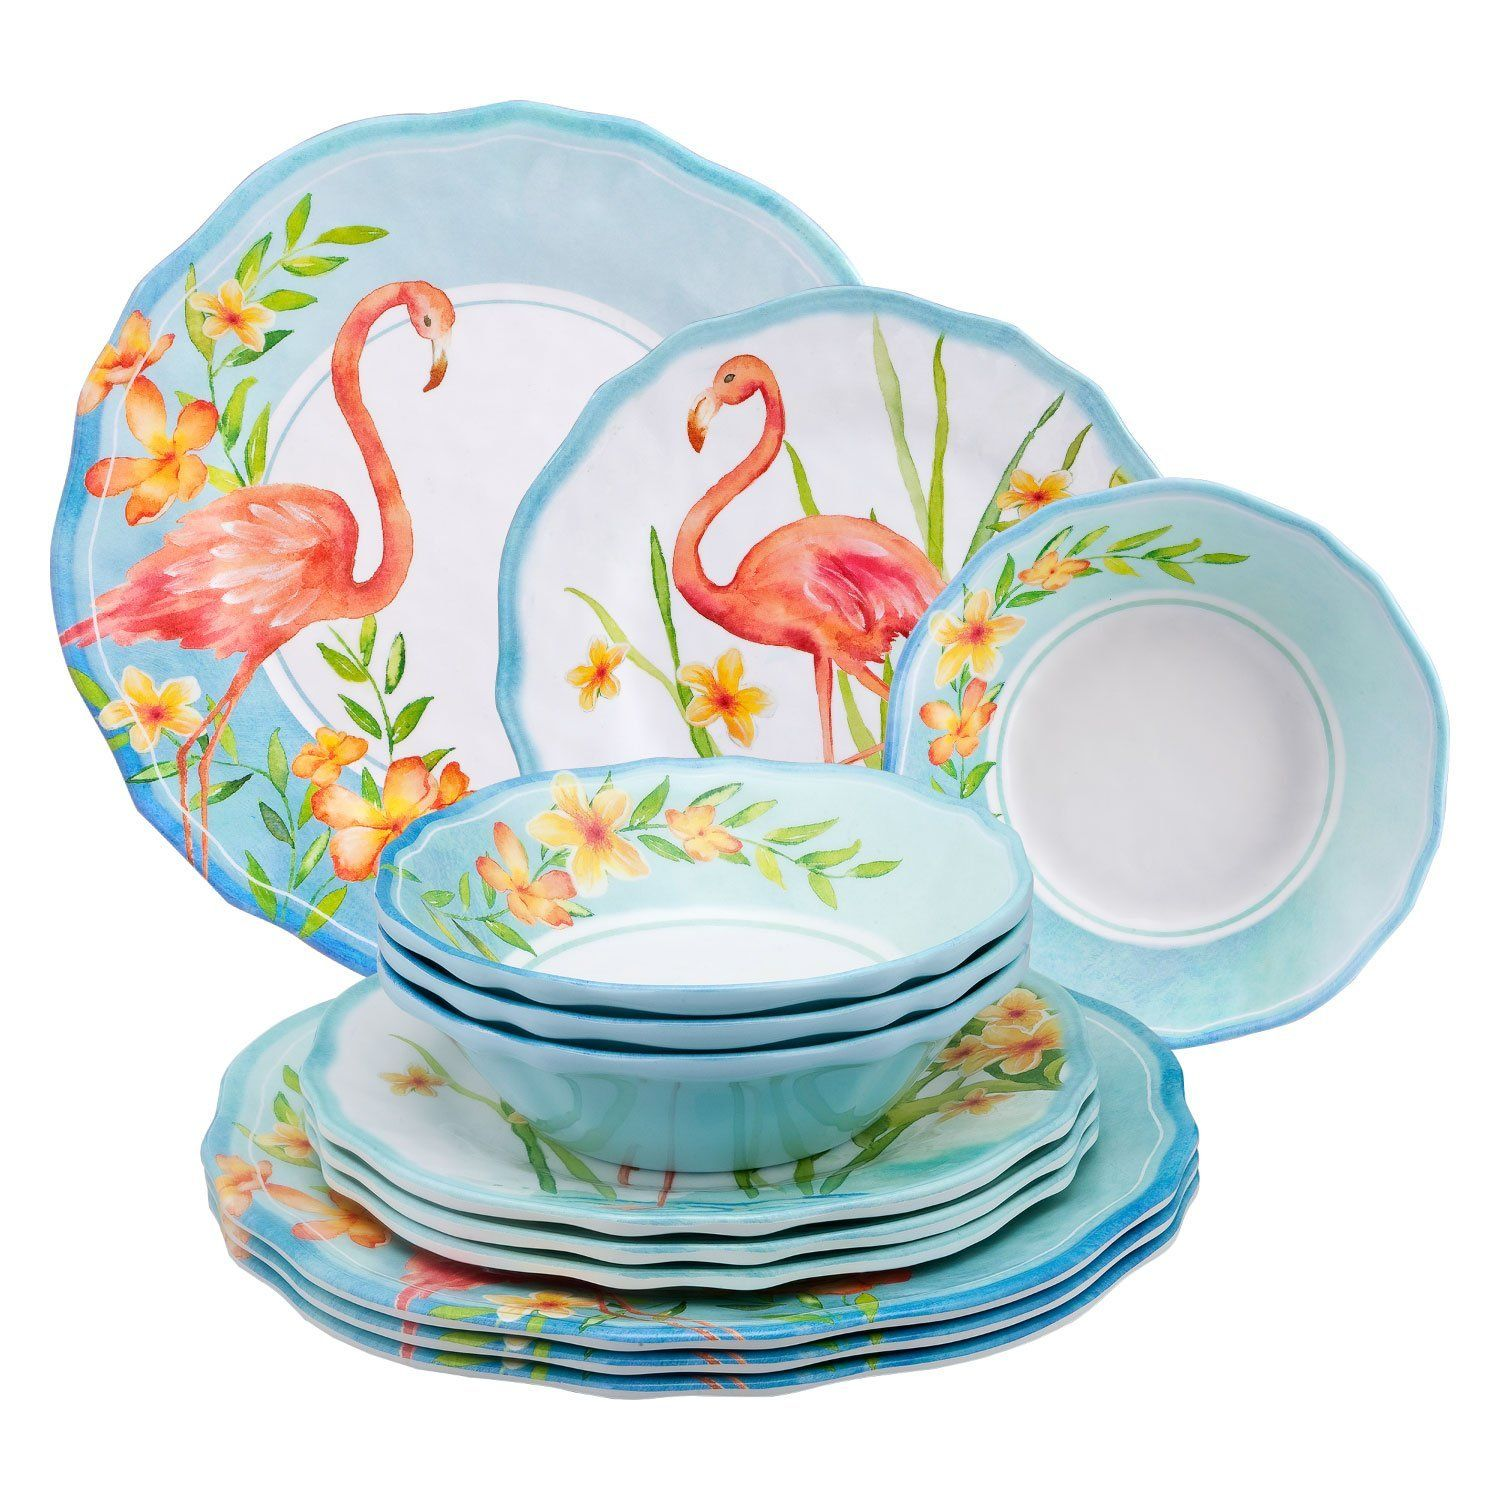 Amazon.com | Gourmet Art 12-Piece Flamingo Melamine Dinnerware Set Dinnerware Sets  sc 1 st  Pinterest & Amazon.com | Gourmet Art 12-Piece Flamingo Melamine Dinnerware Set ...